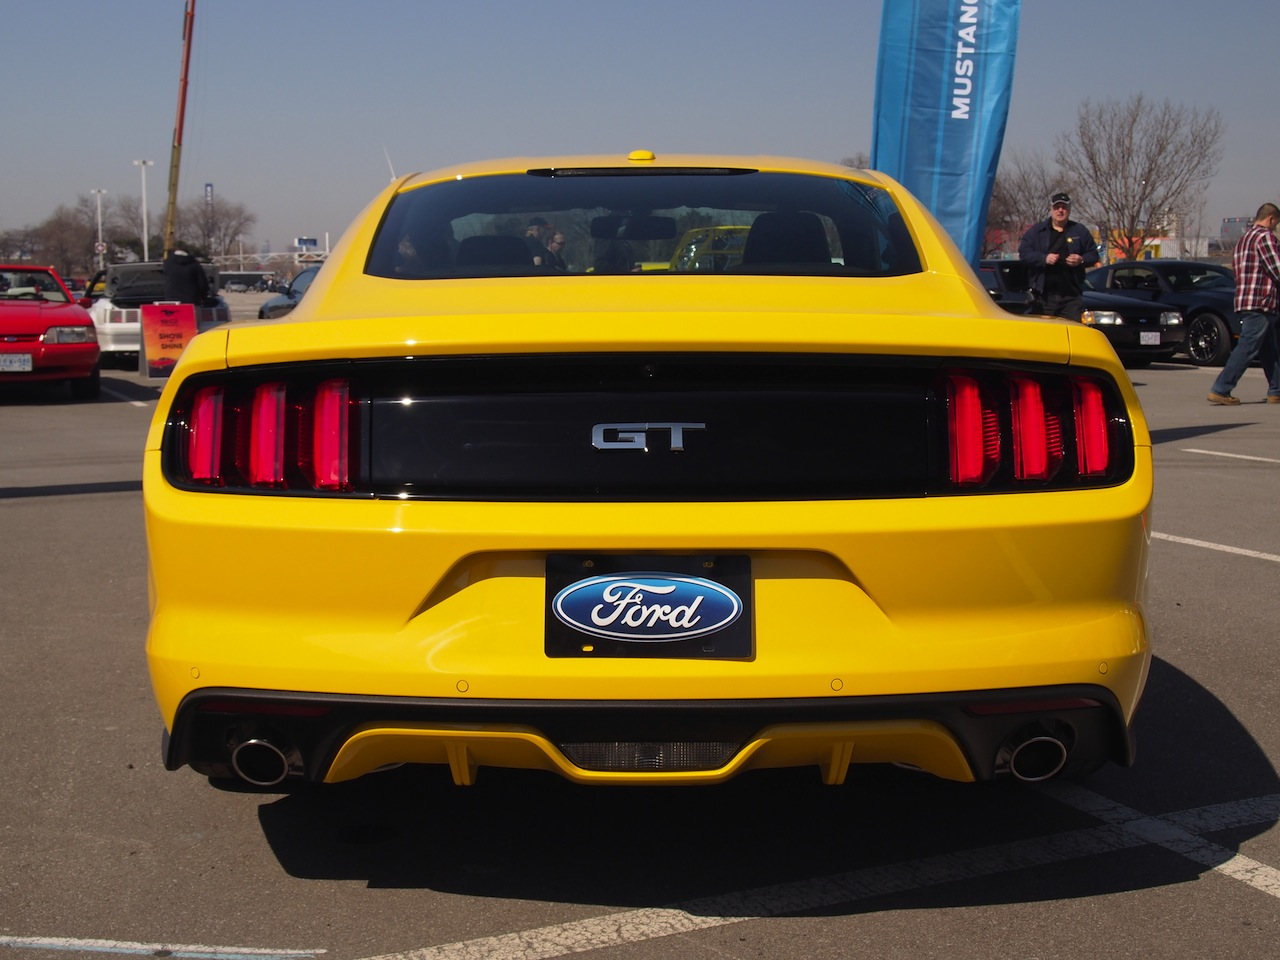 Ford Mustang 50th Anniversary Cars Photos Test Drives